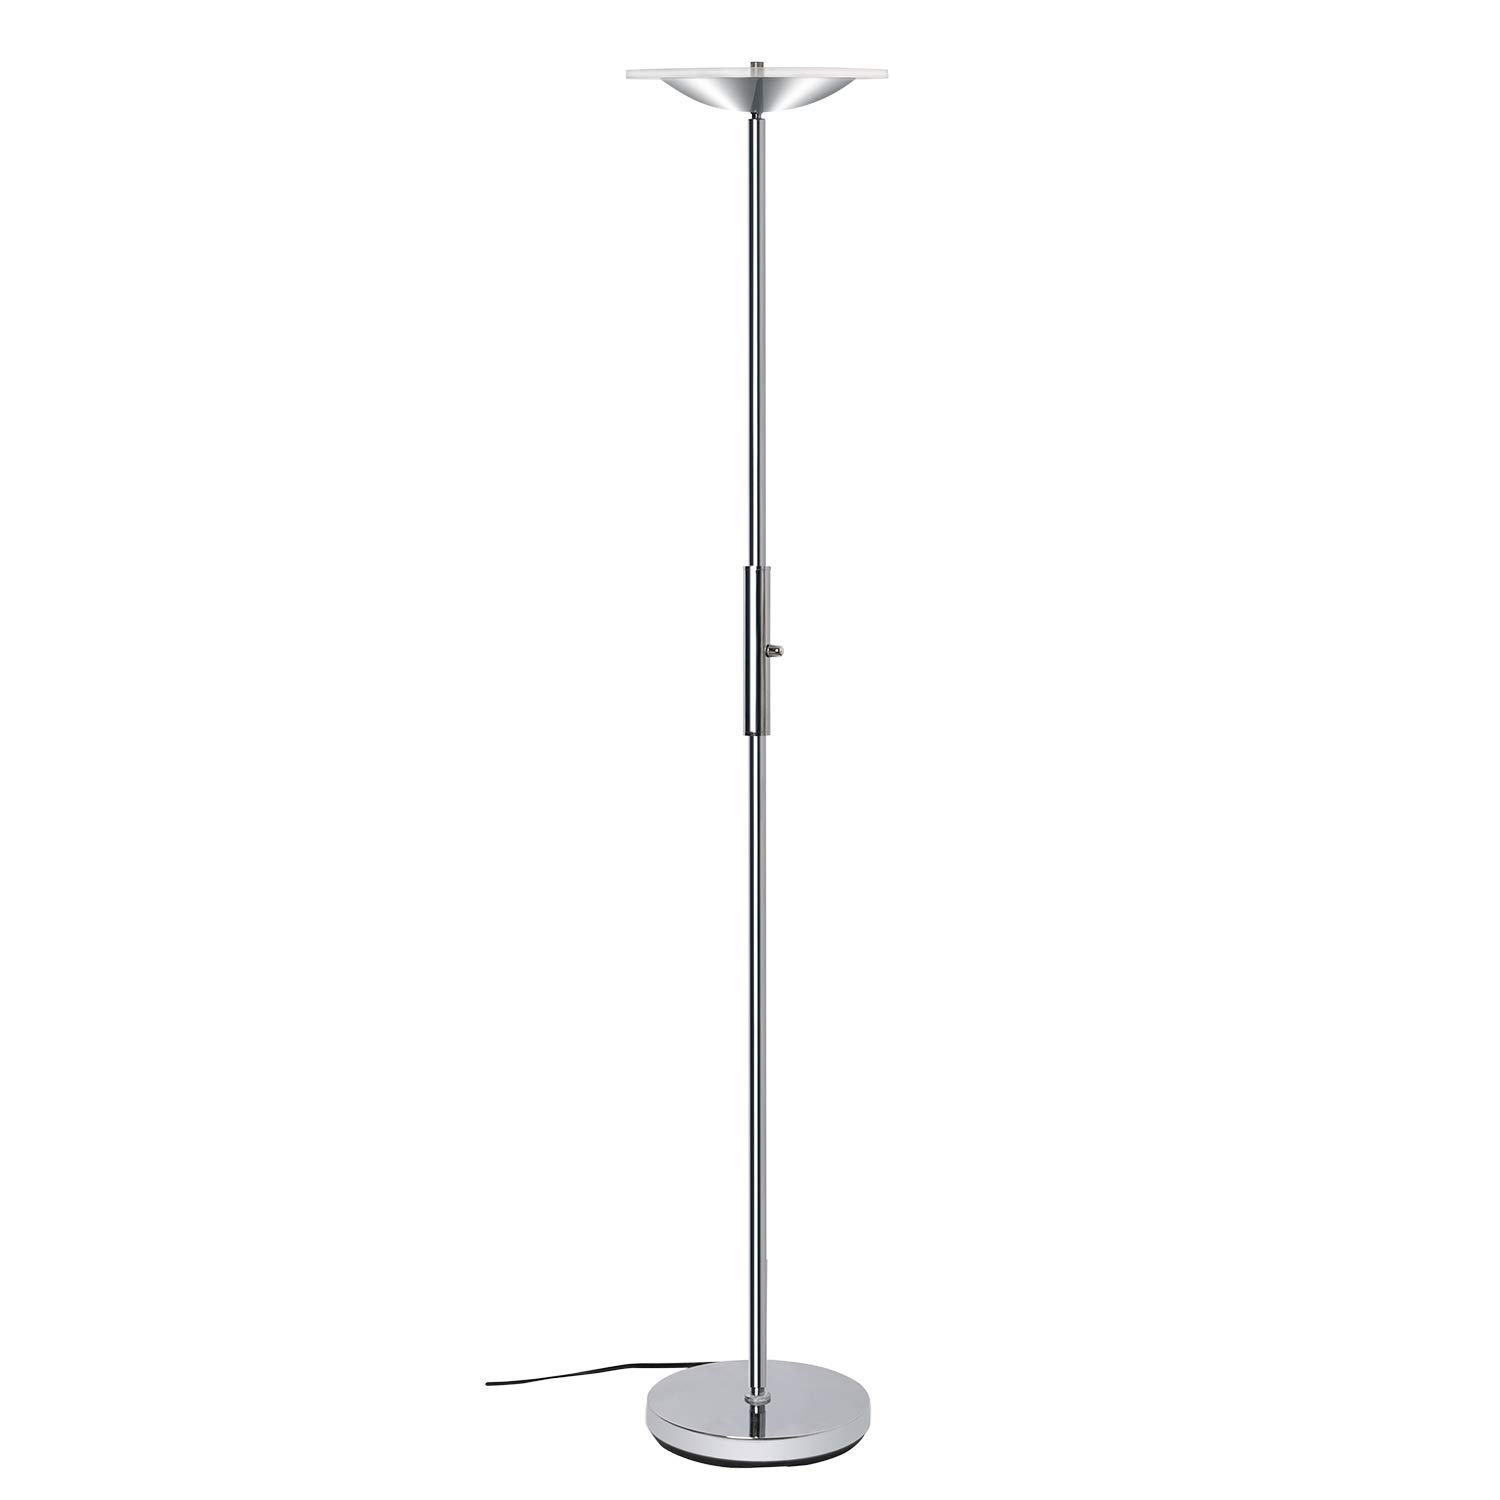 LED Torchiere Floor Lamp, SUNLLIPE Super Bright 18W Dimmable Uplight Adjustable Floor Lamp, Modern 70.5'' Tall Standing Pole Light, Compatible with Wall Switch for Reading, Office, Living Room, Bedroom